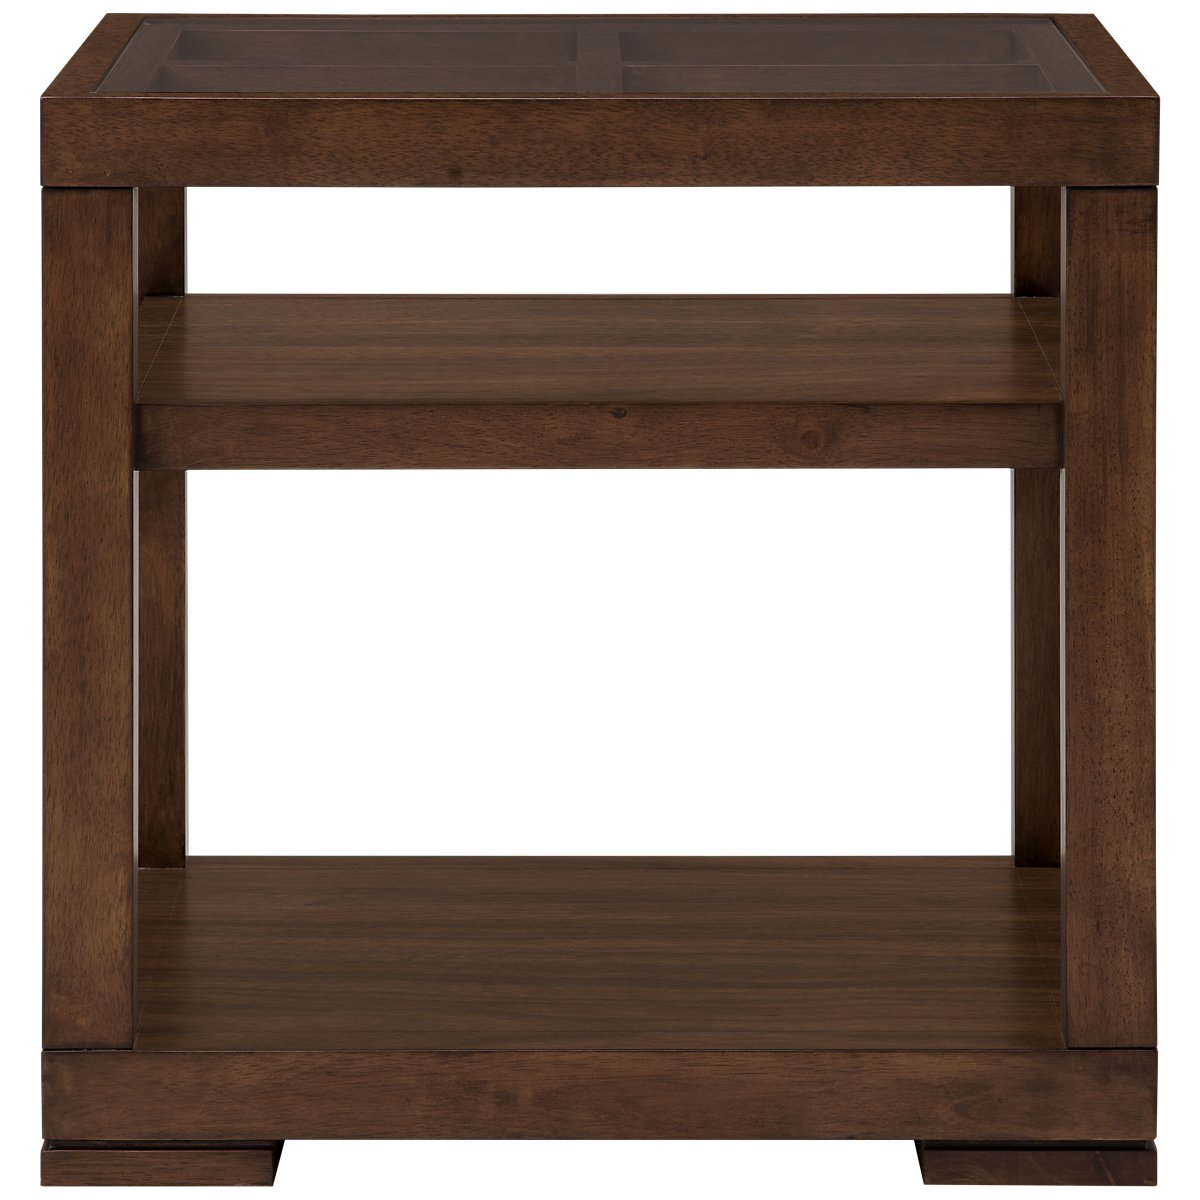 Savoy Mid Tone Glass Square End Table